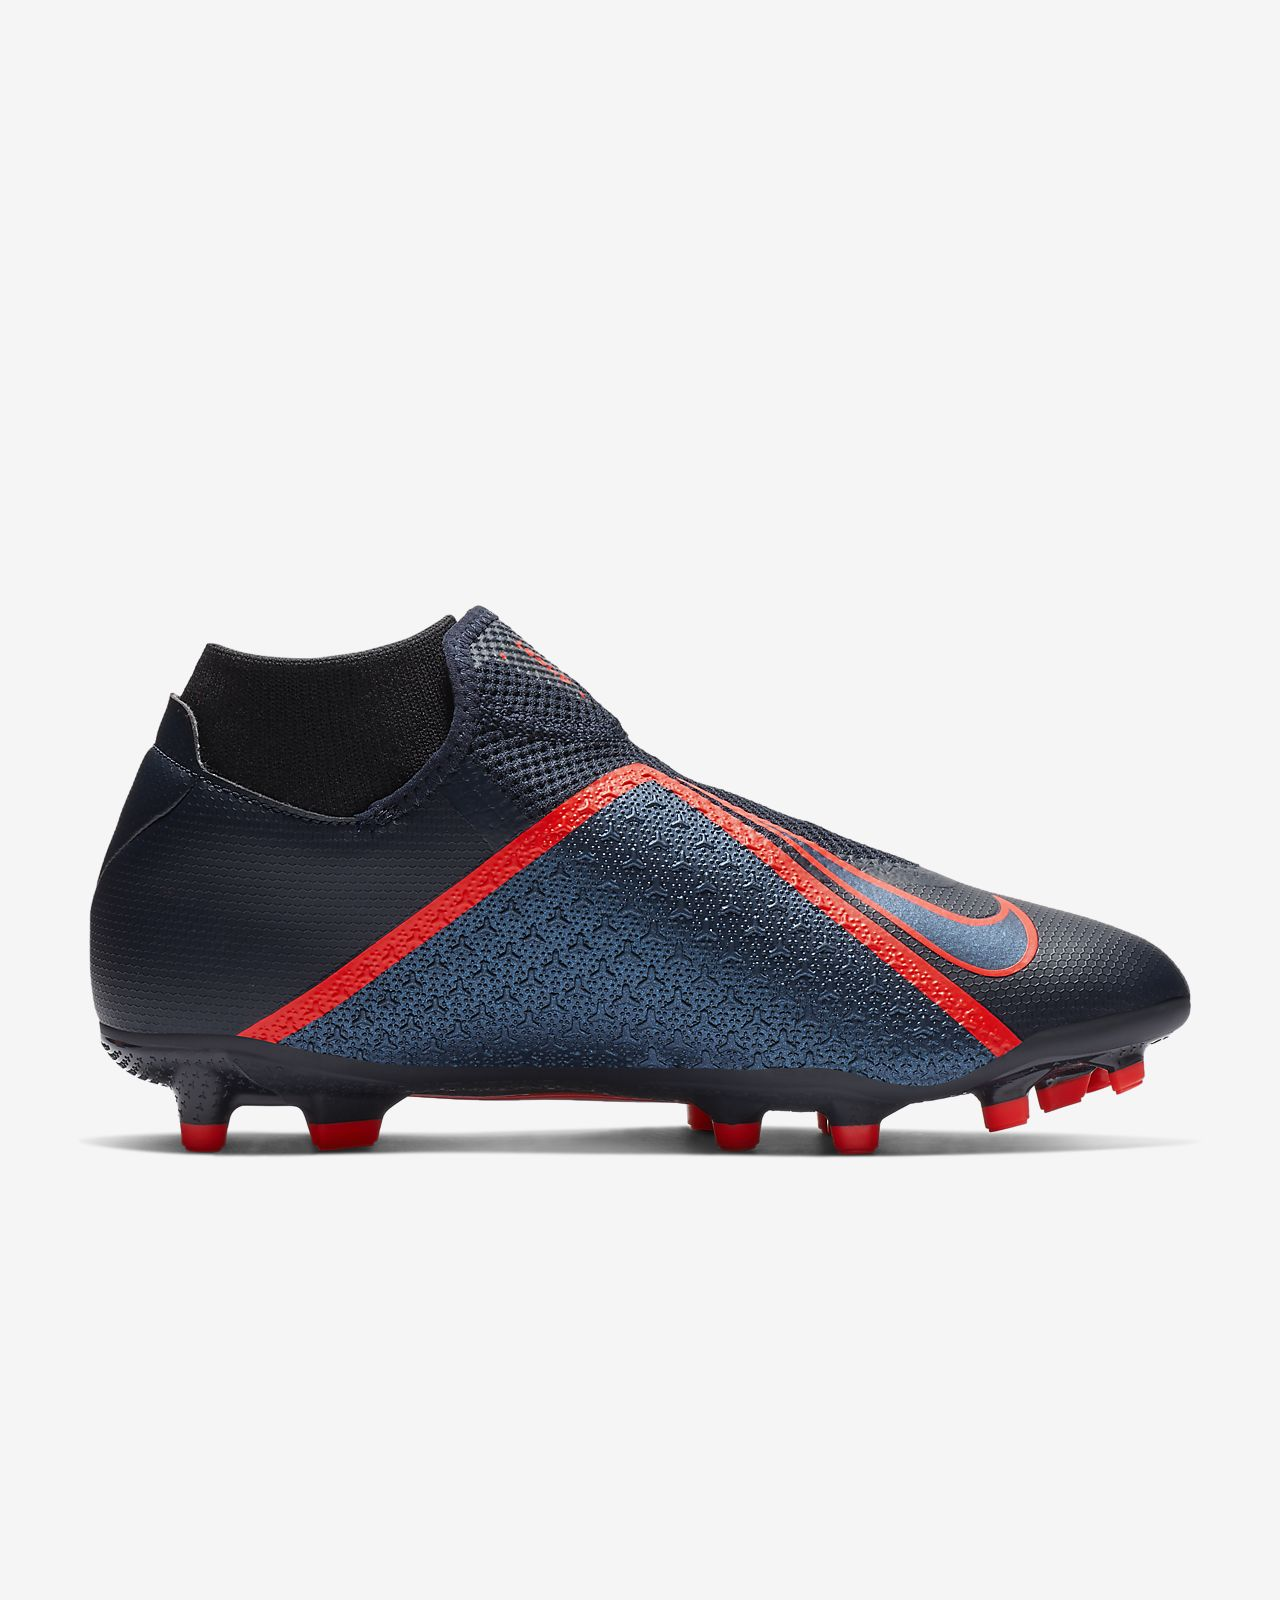 ead0d9488cee Nike Phantom Vision Academy Dynamic Fit MG Multi-Ground Soccer Cleat ...